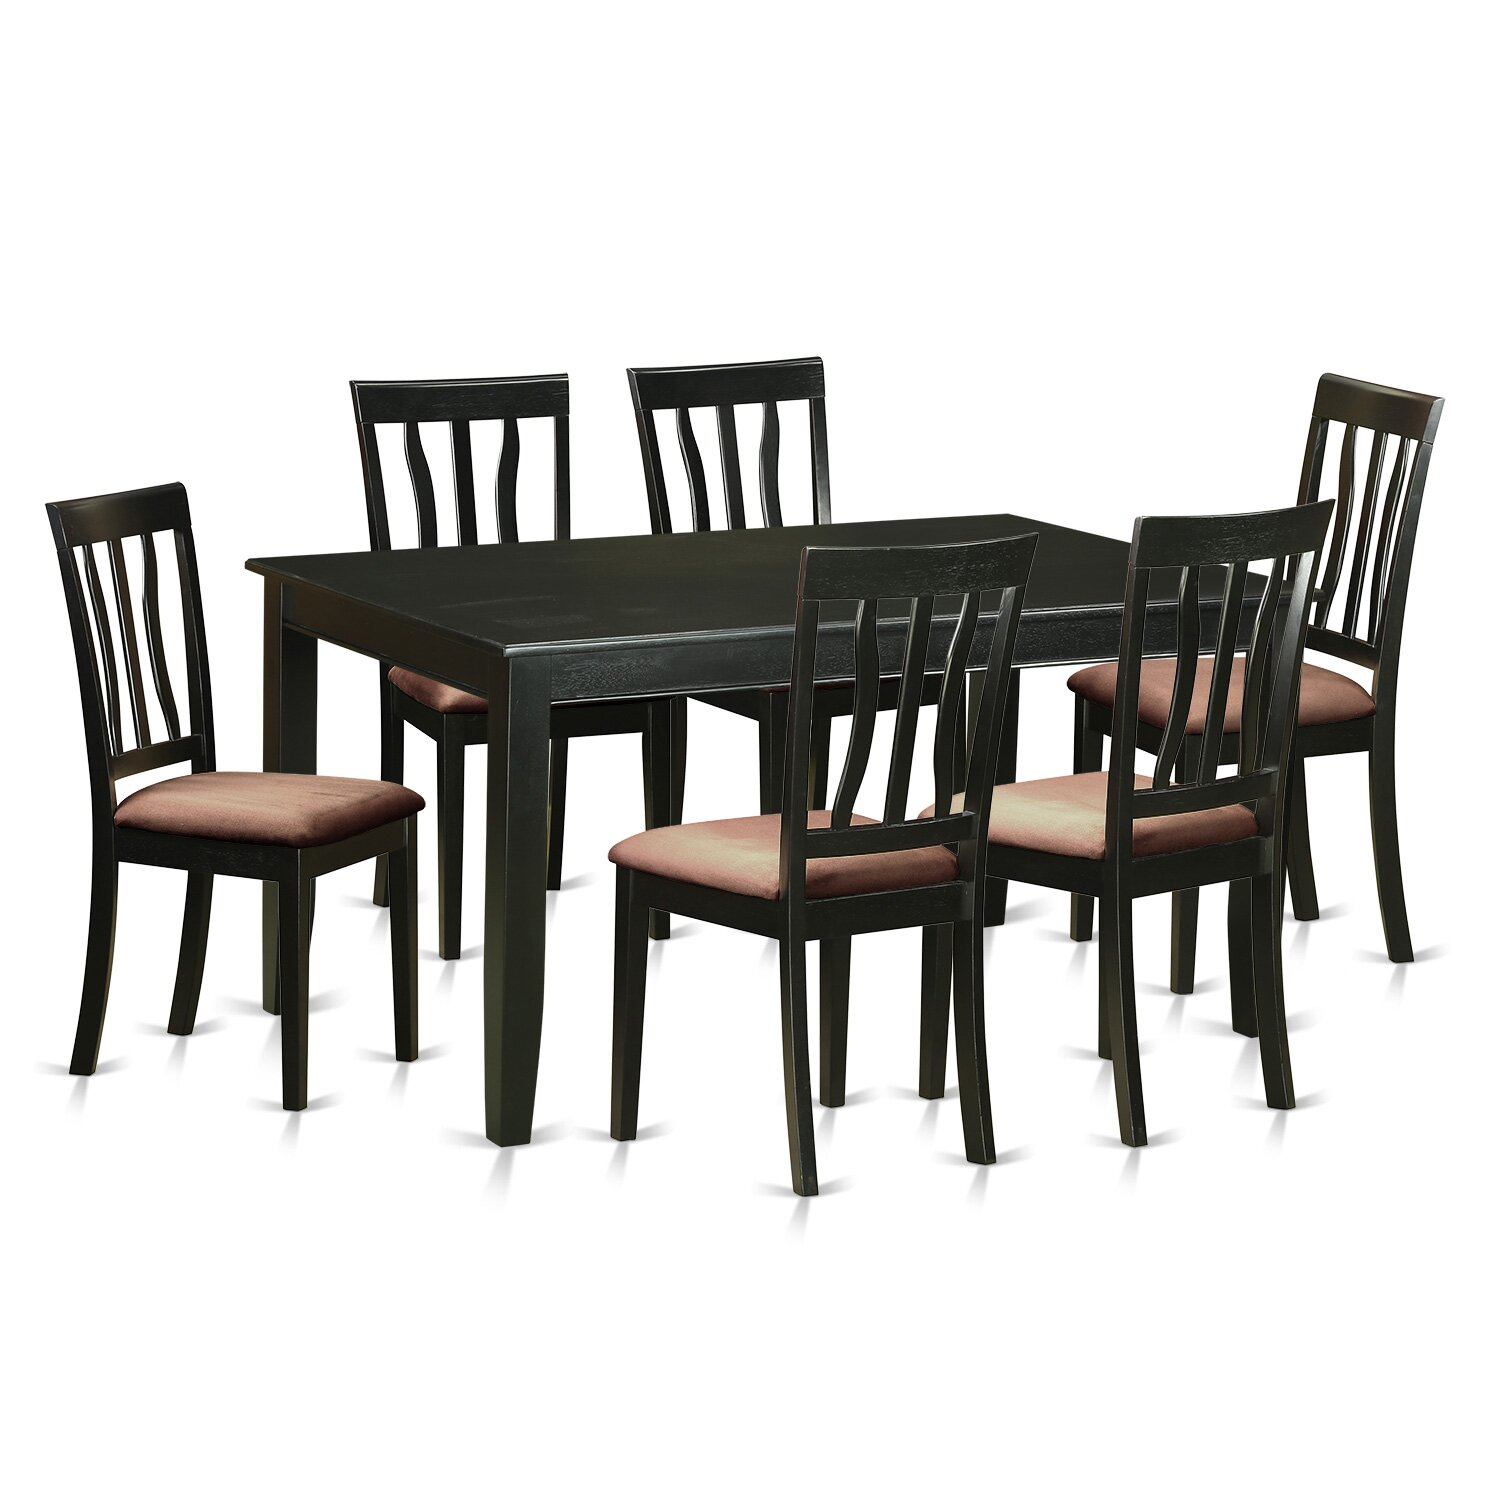 Wooden importers dudley 7 piece dining set wayfair for Kitchen table set 6 chairs